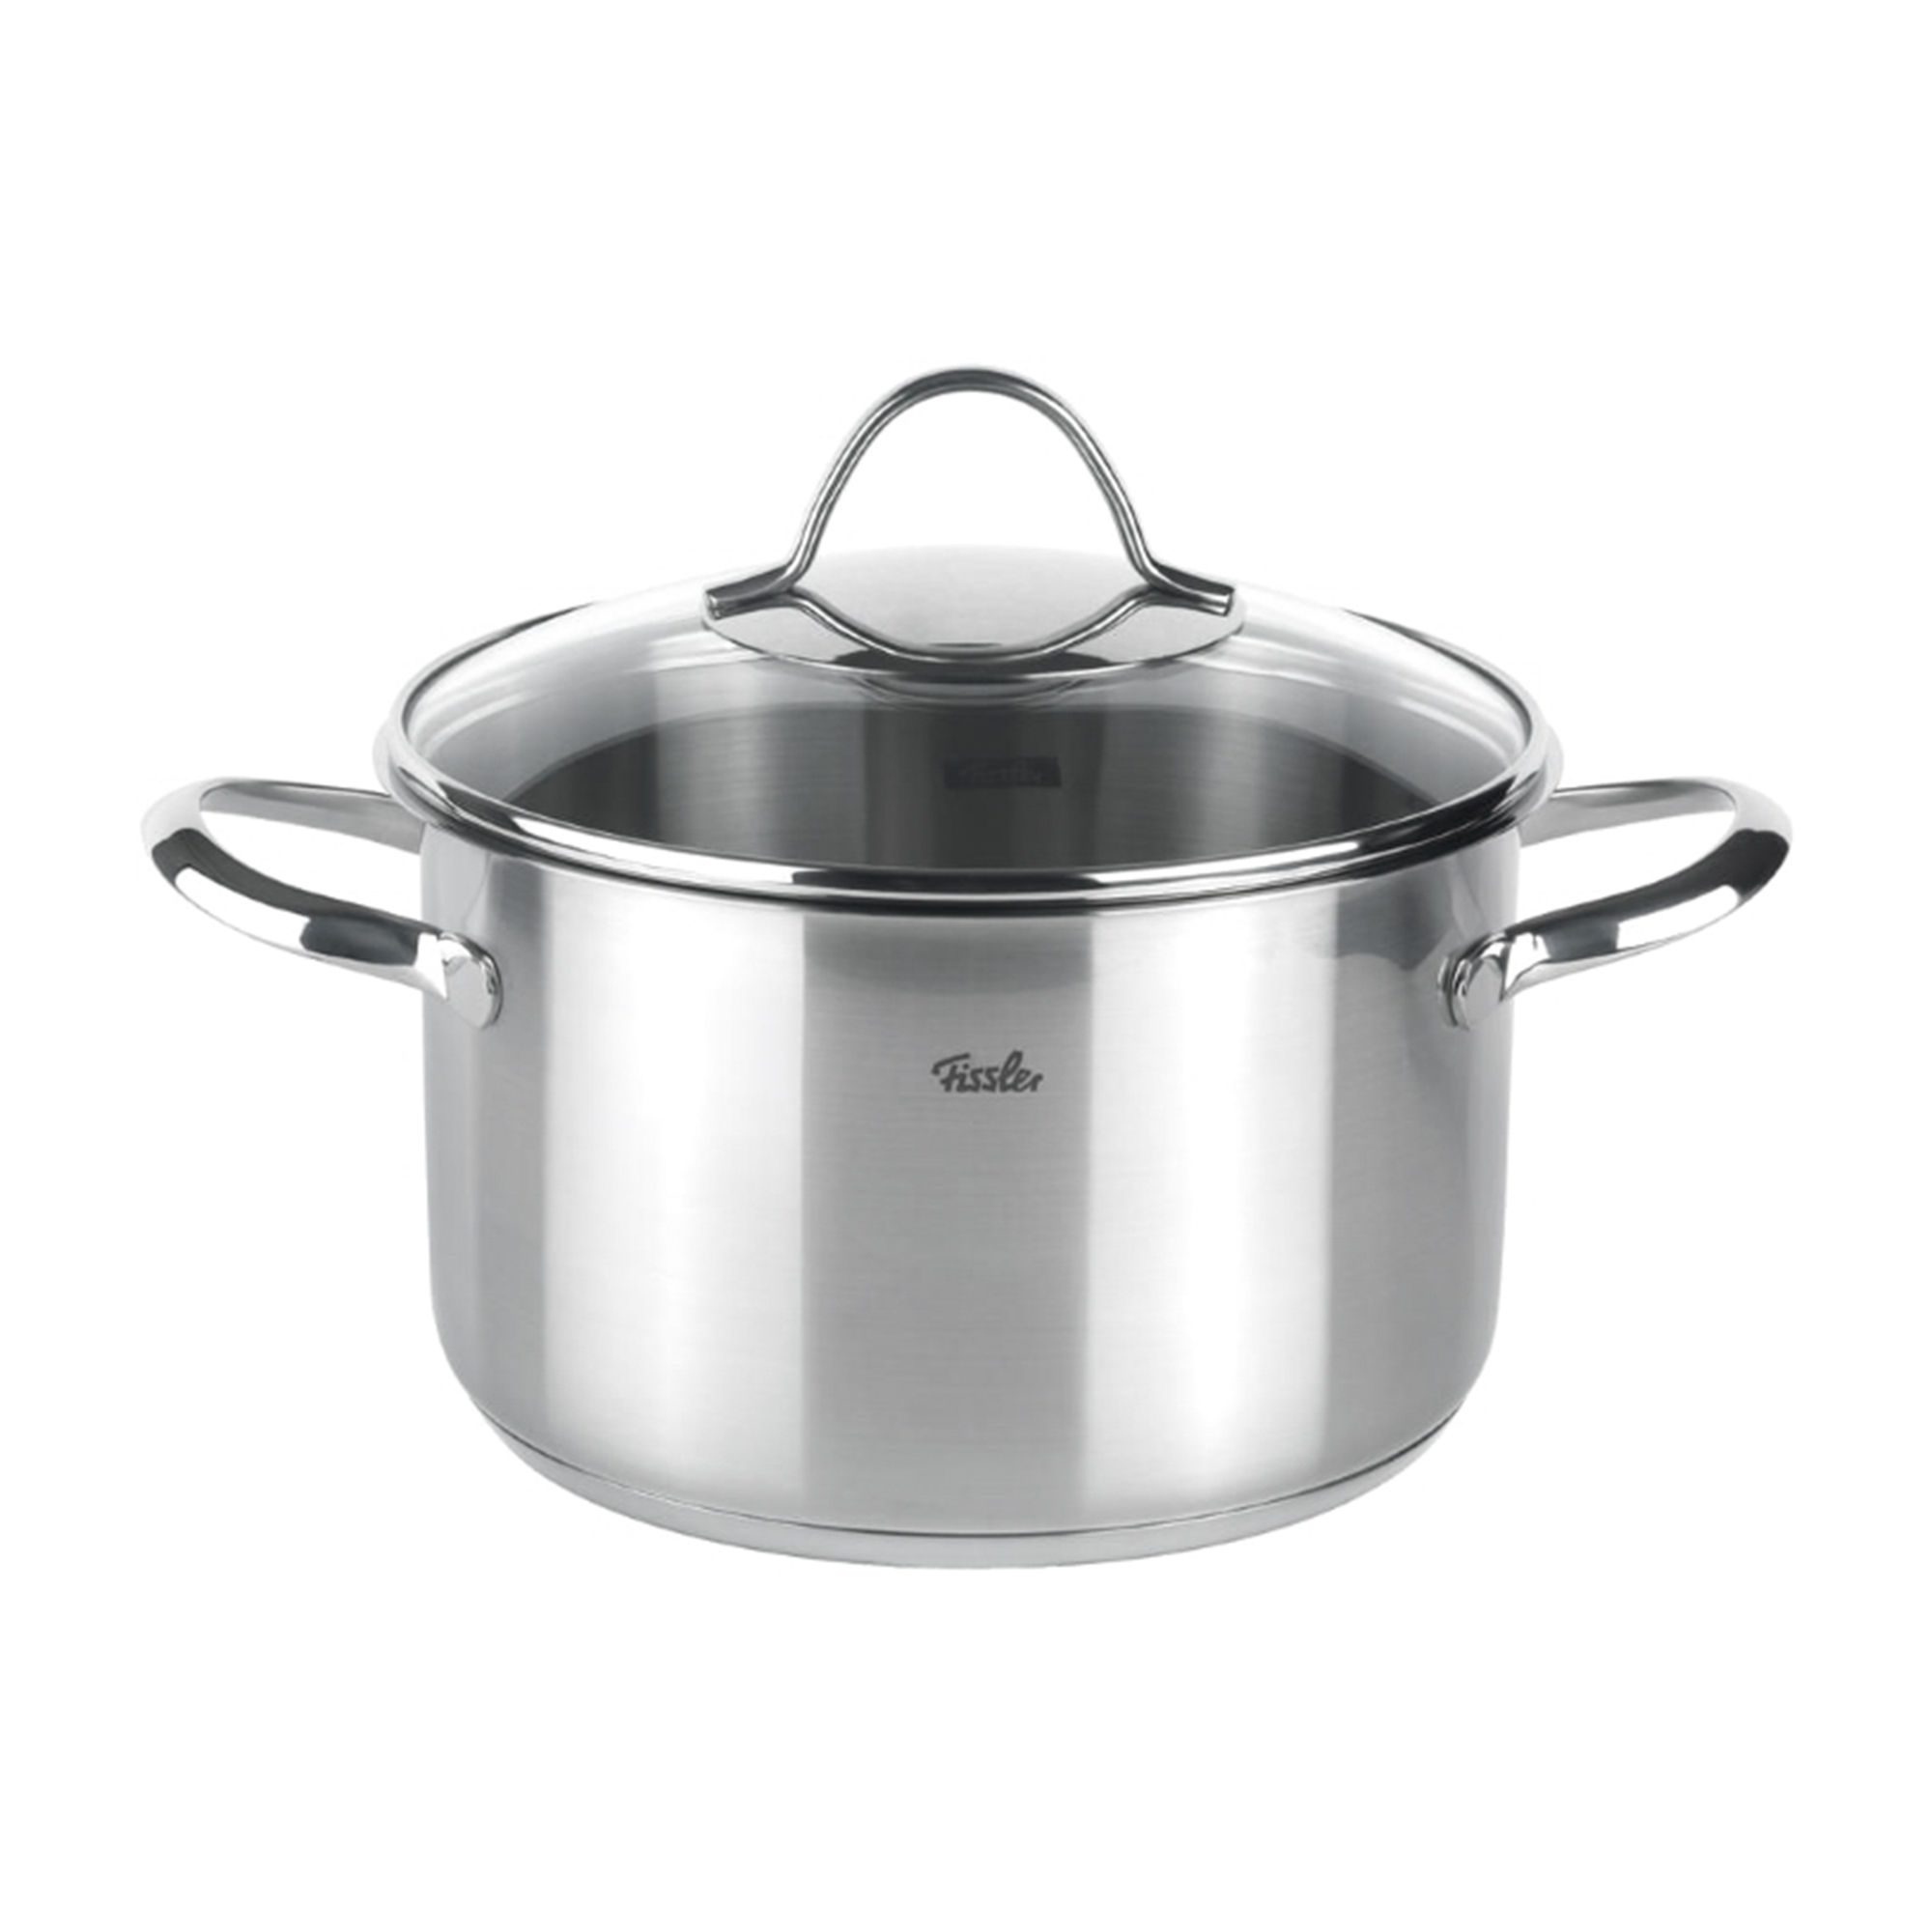 Купить Кастрюля Fissler Paris 16 см 2, 1 л, Серебристый